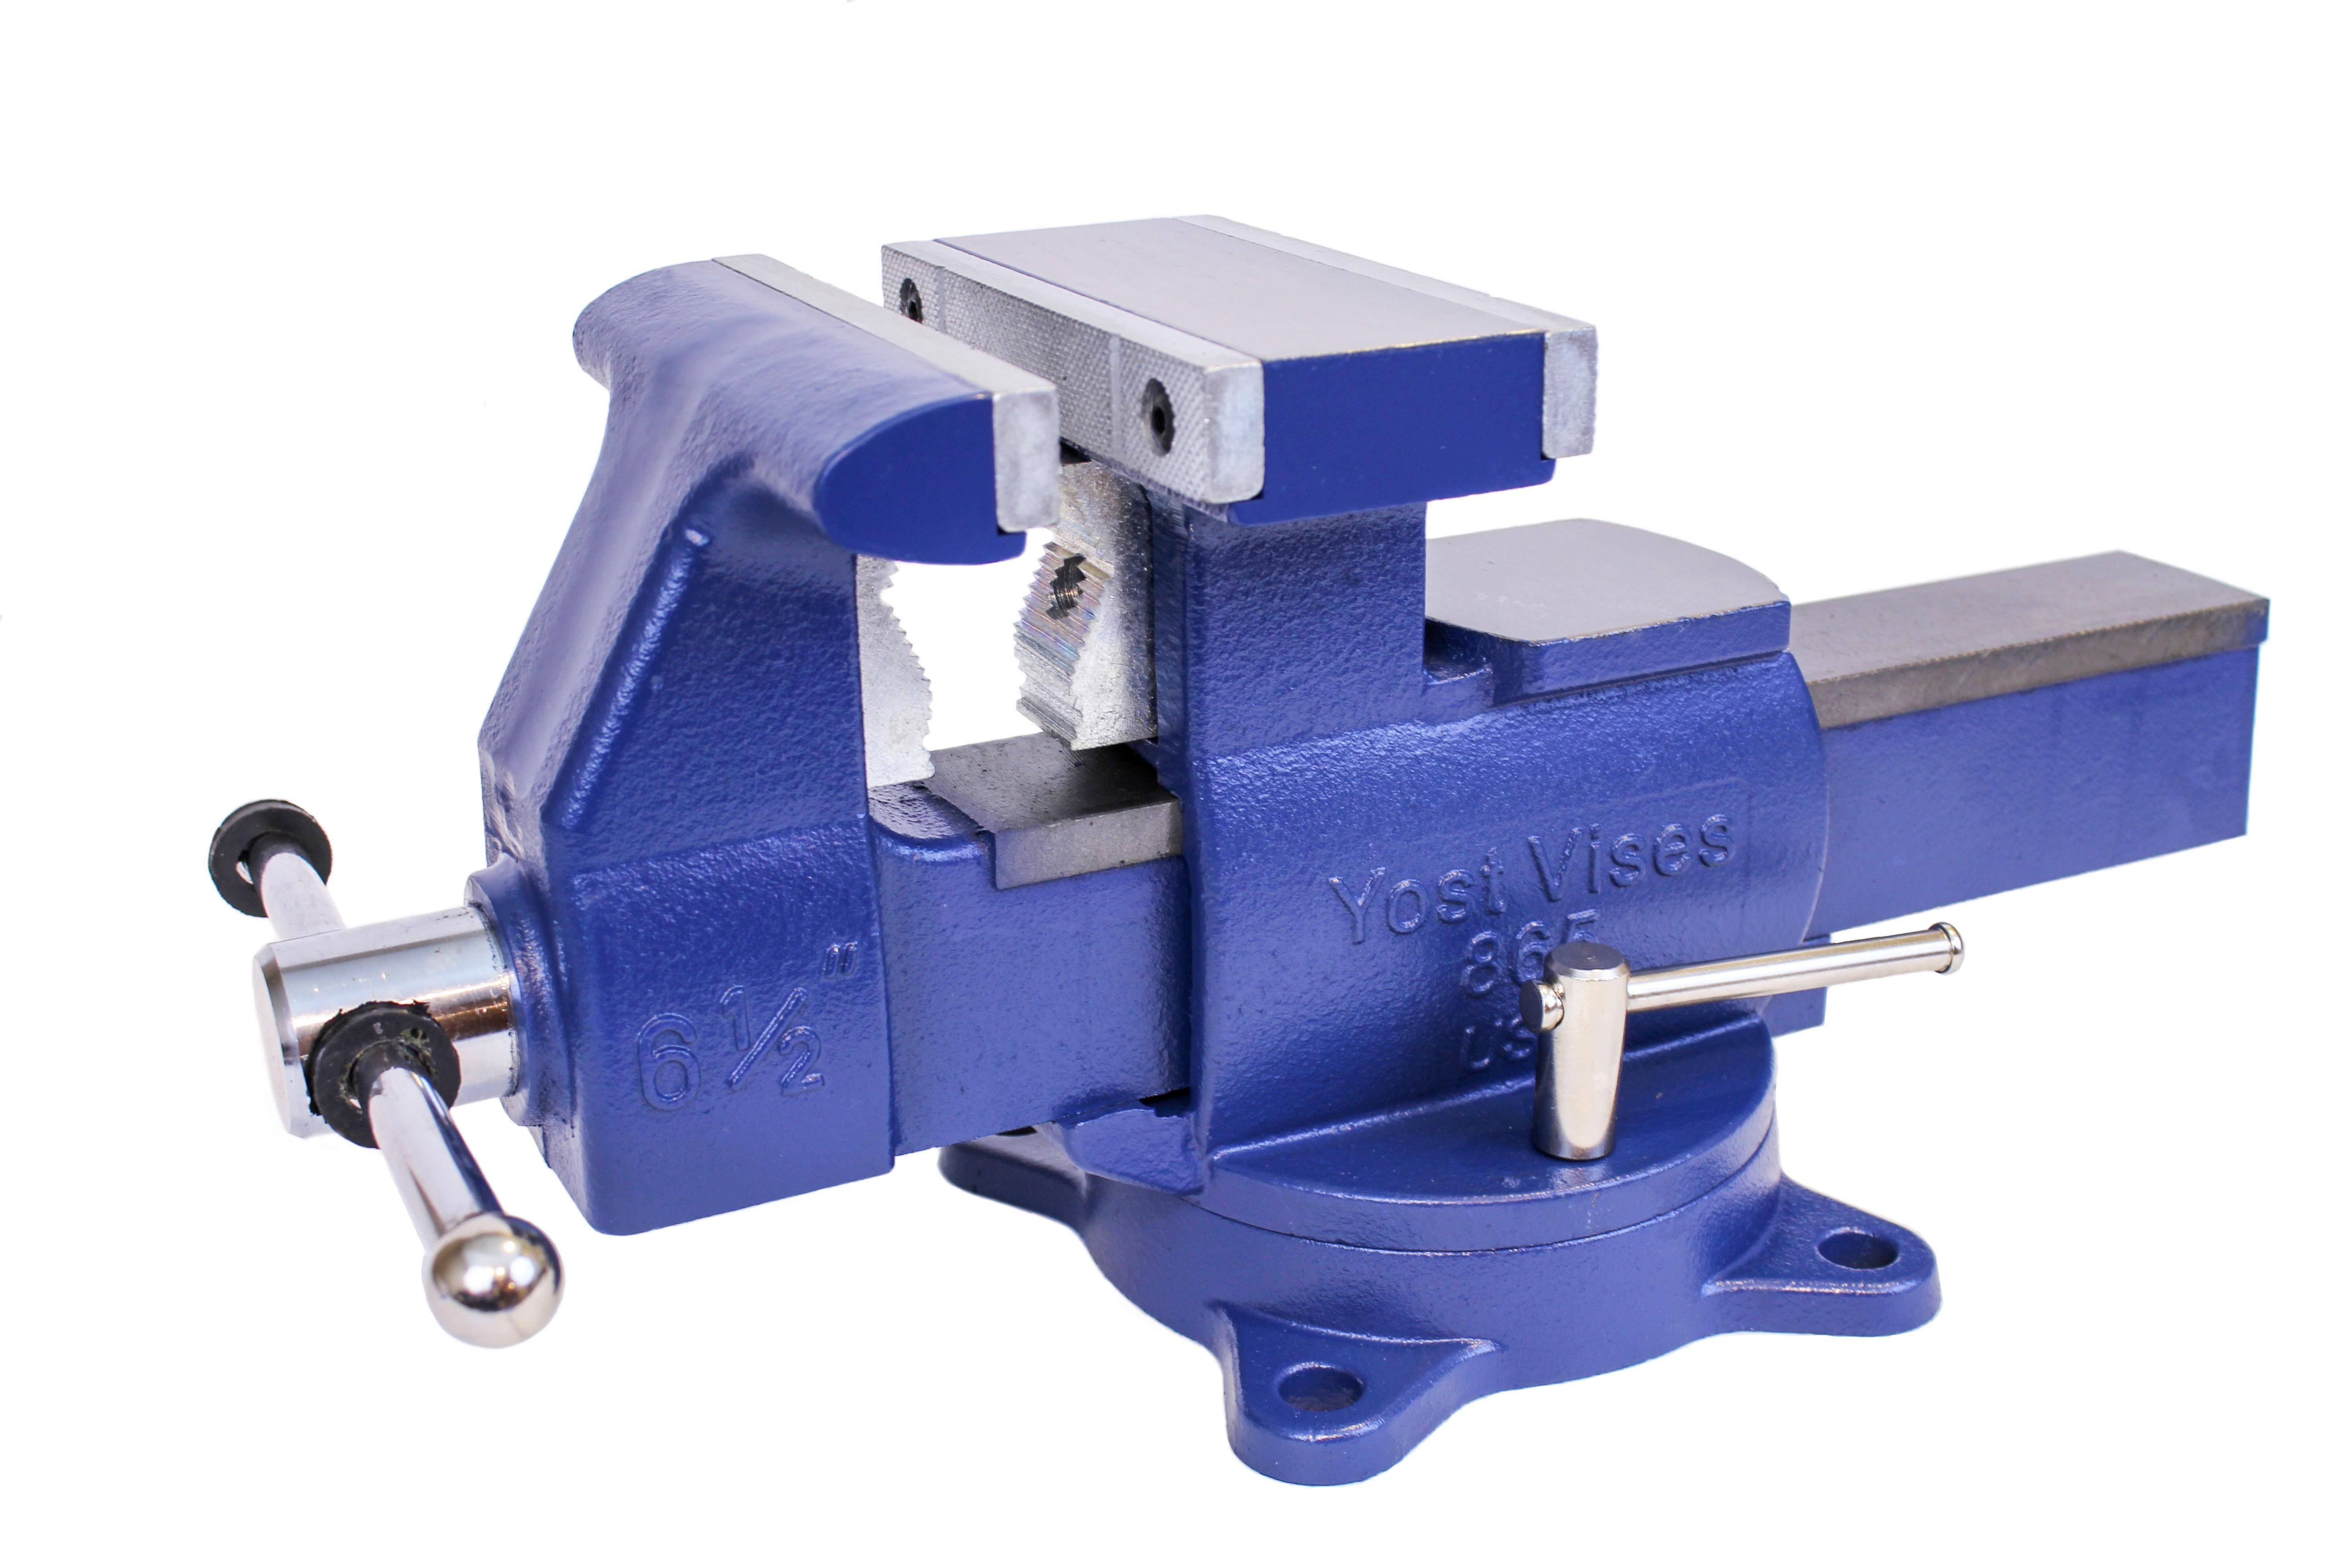 """yost vises 865-di 6.5"""" heavy duty reversible bench vise made"""